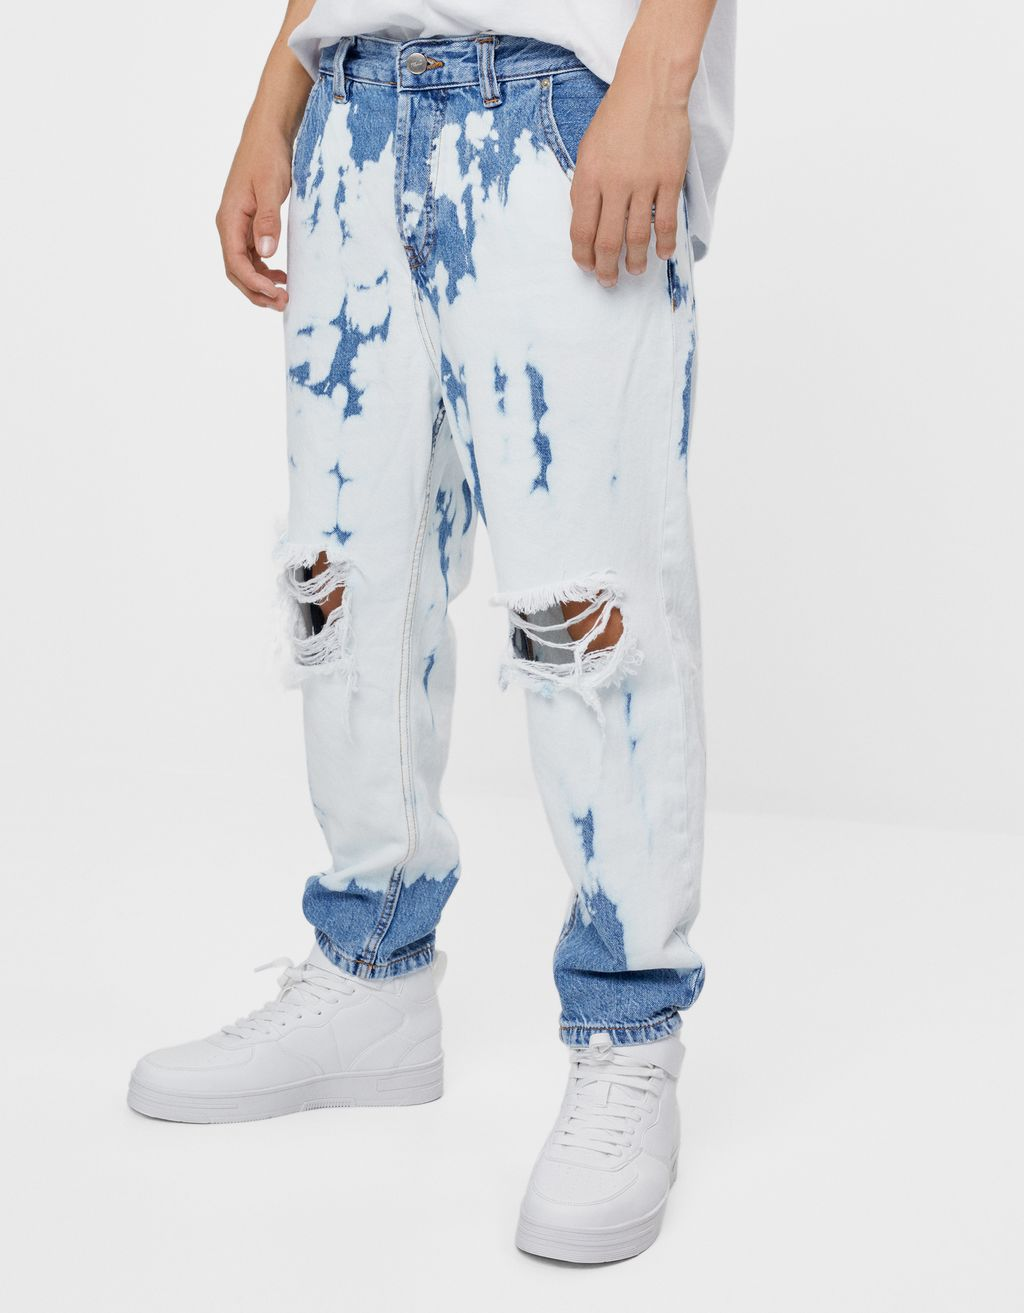 Jeans im Washed-Look